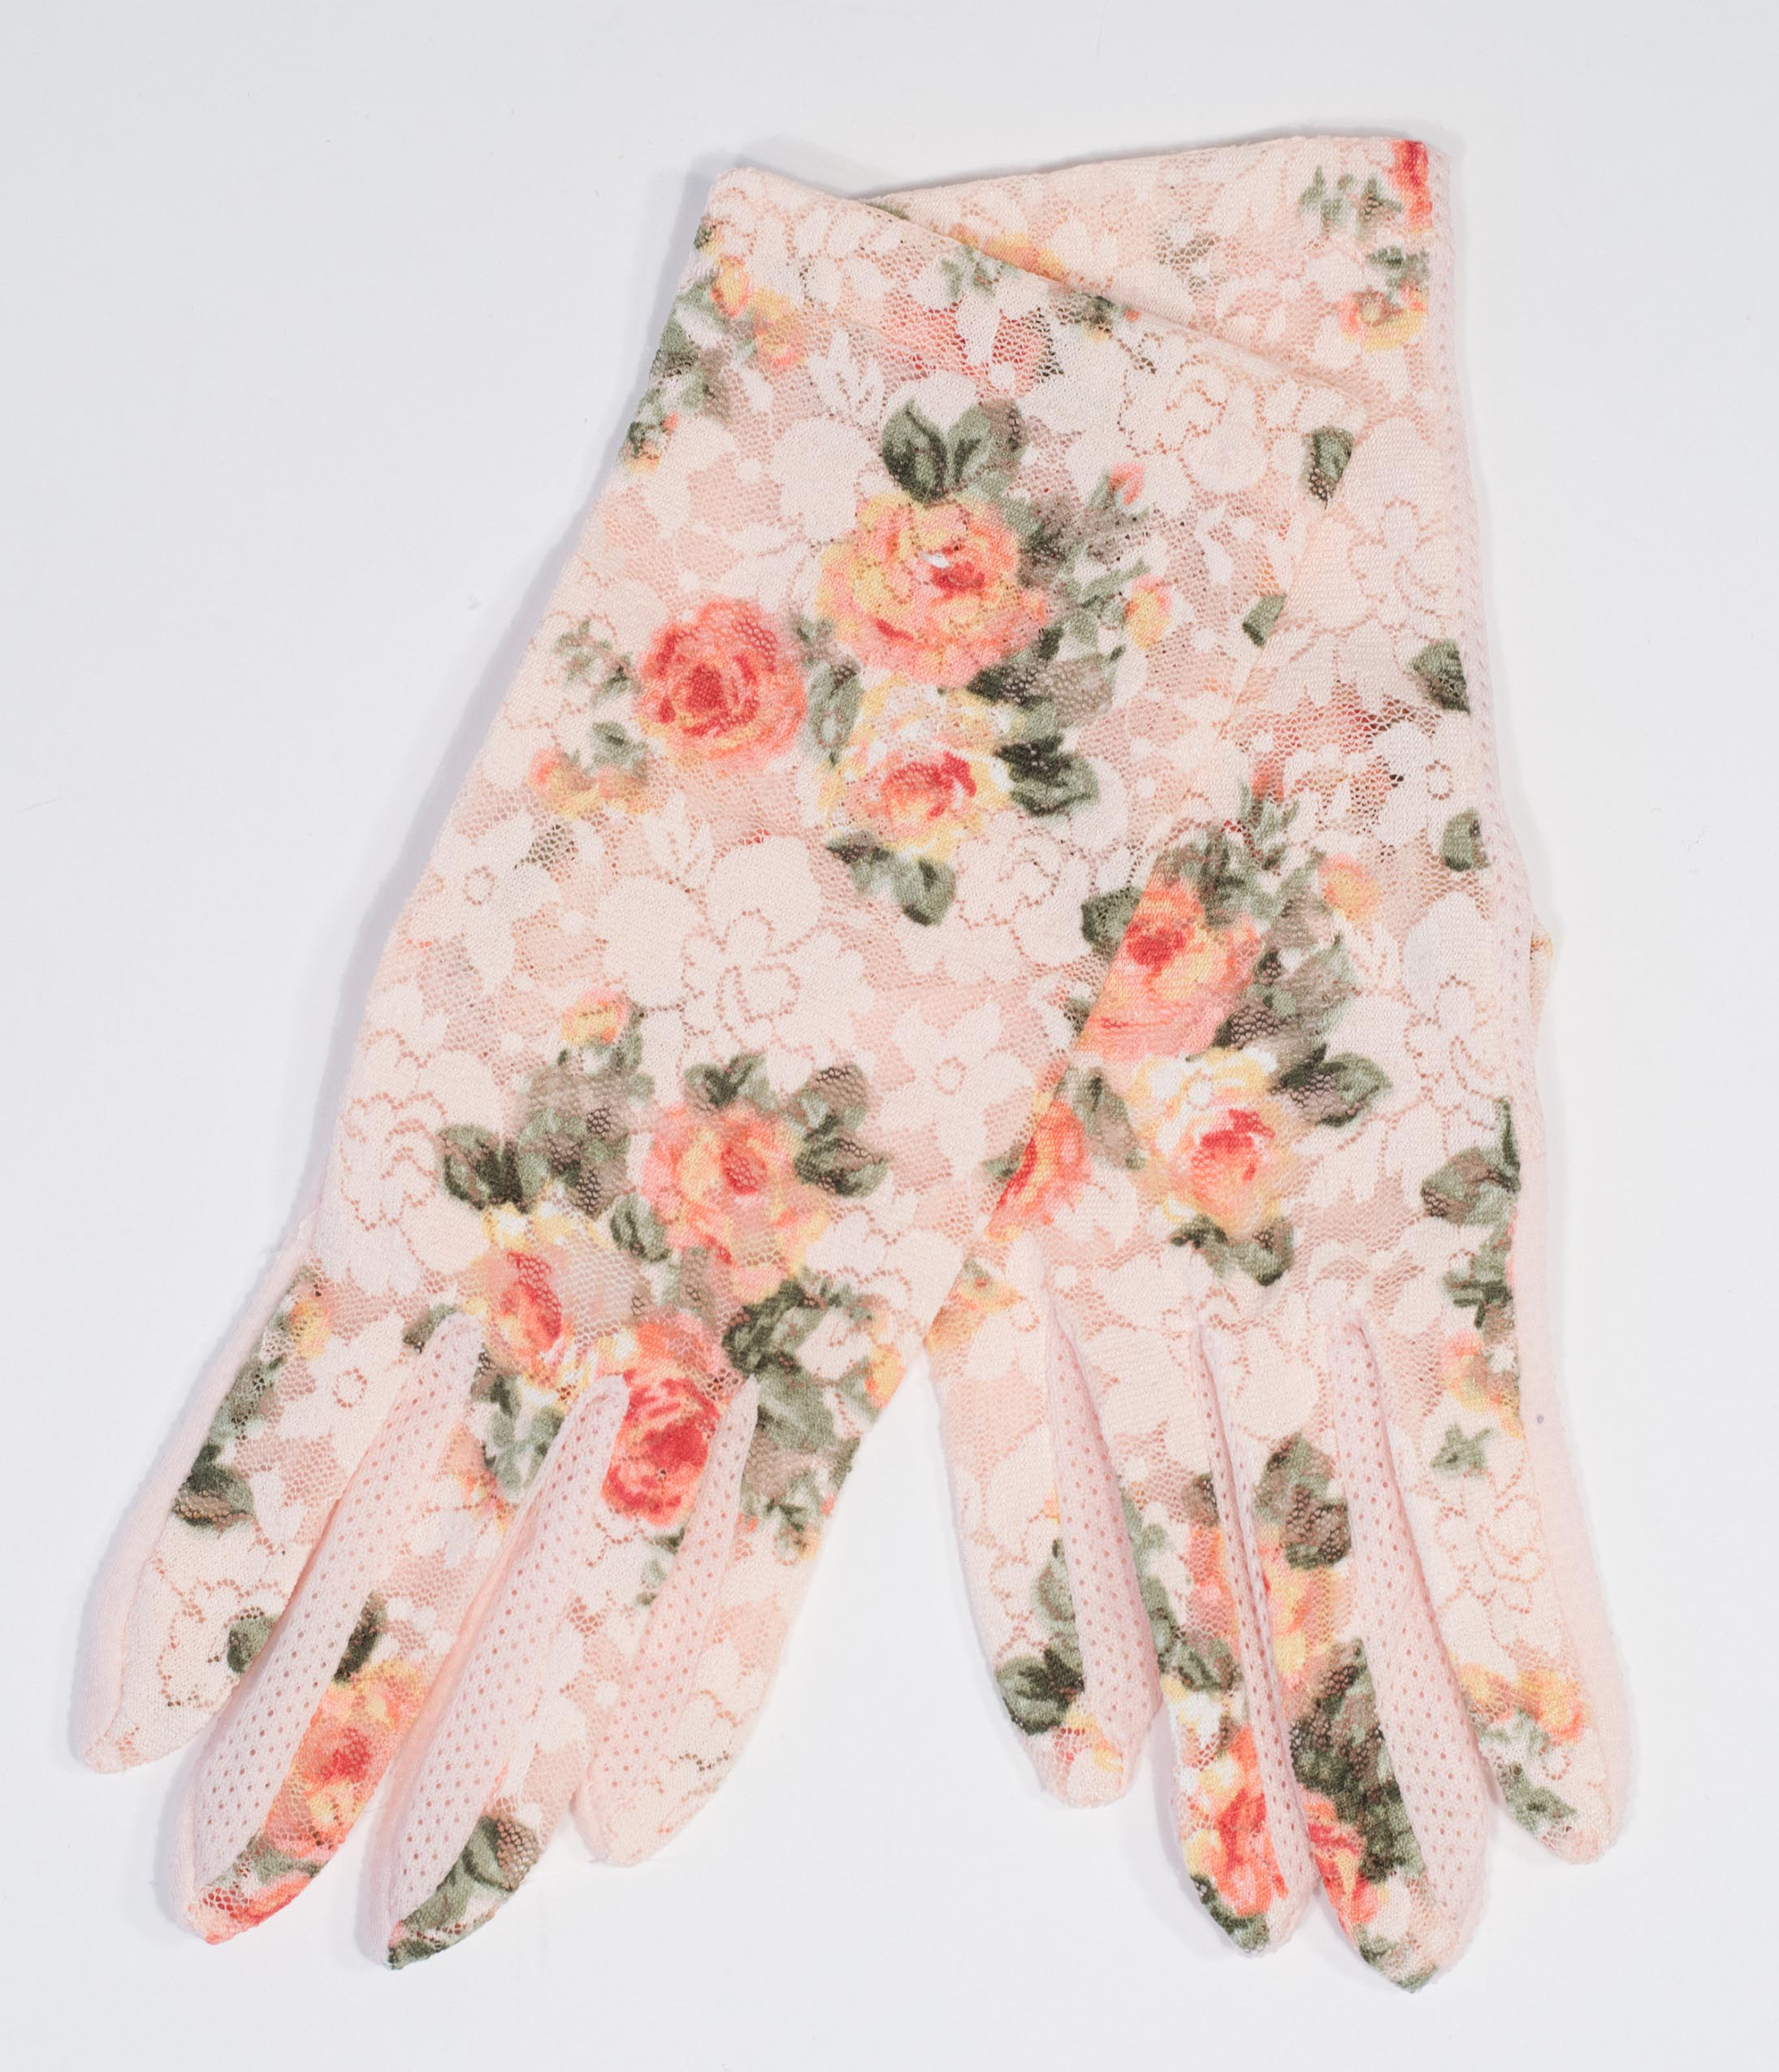 Vintage Gloves History- 1900, 1910, 1920, 1930 1940, 1950, 1960 Blush Floral Sheer Wrist Gloves $24.00 AT vintagedancer.com